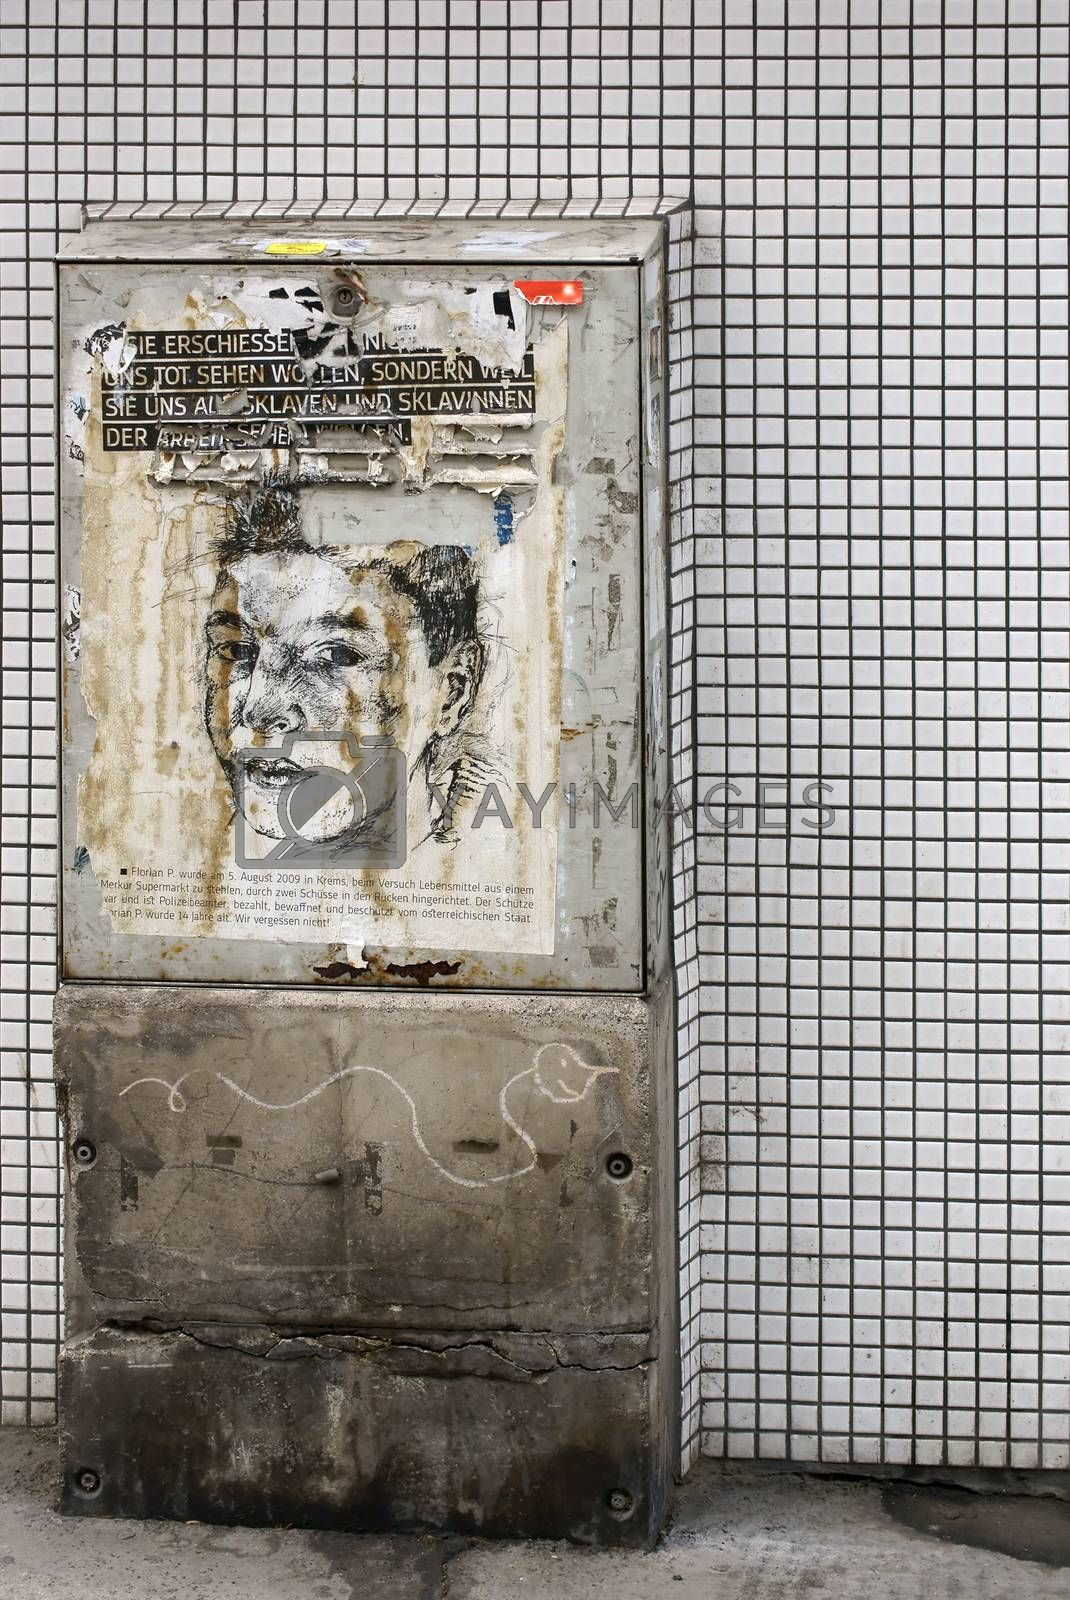 Vienna, Austria - March 30, 2014: An electric box on a tiled wall with a drawing commemorating Florian P. on March 30, 2014 in Vienna.